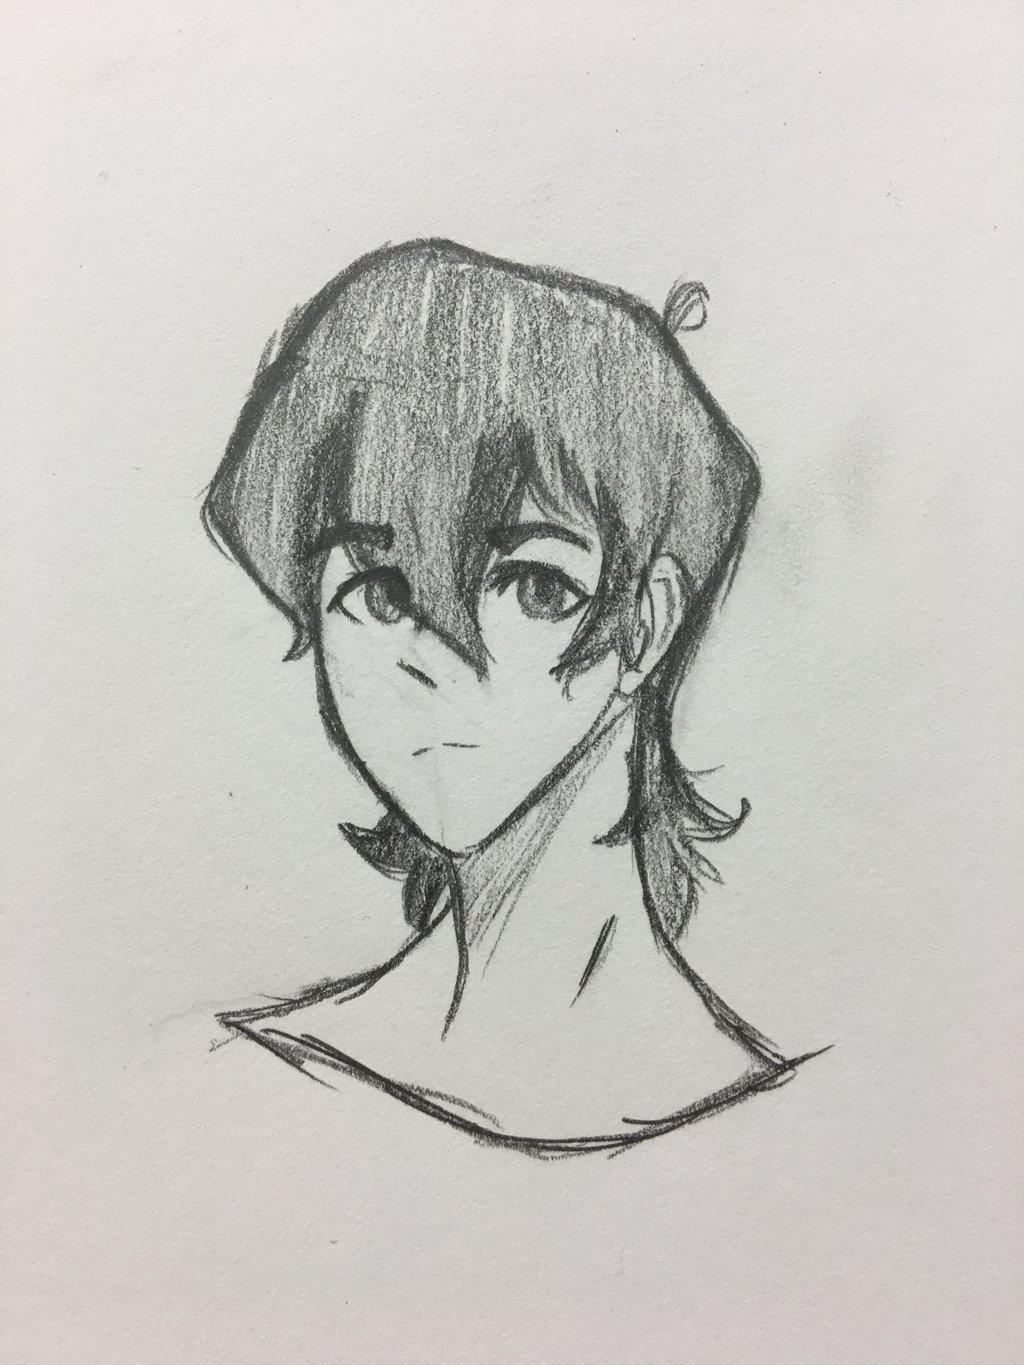 Keith sketch  by Ailizerbee08